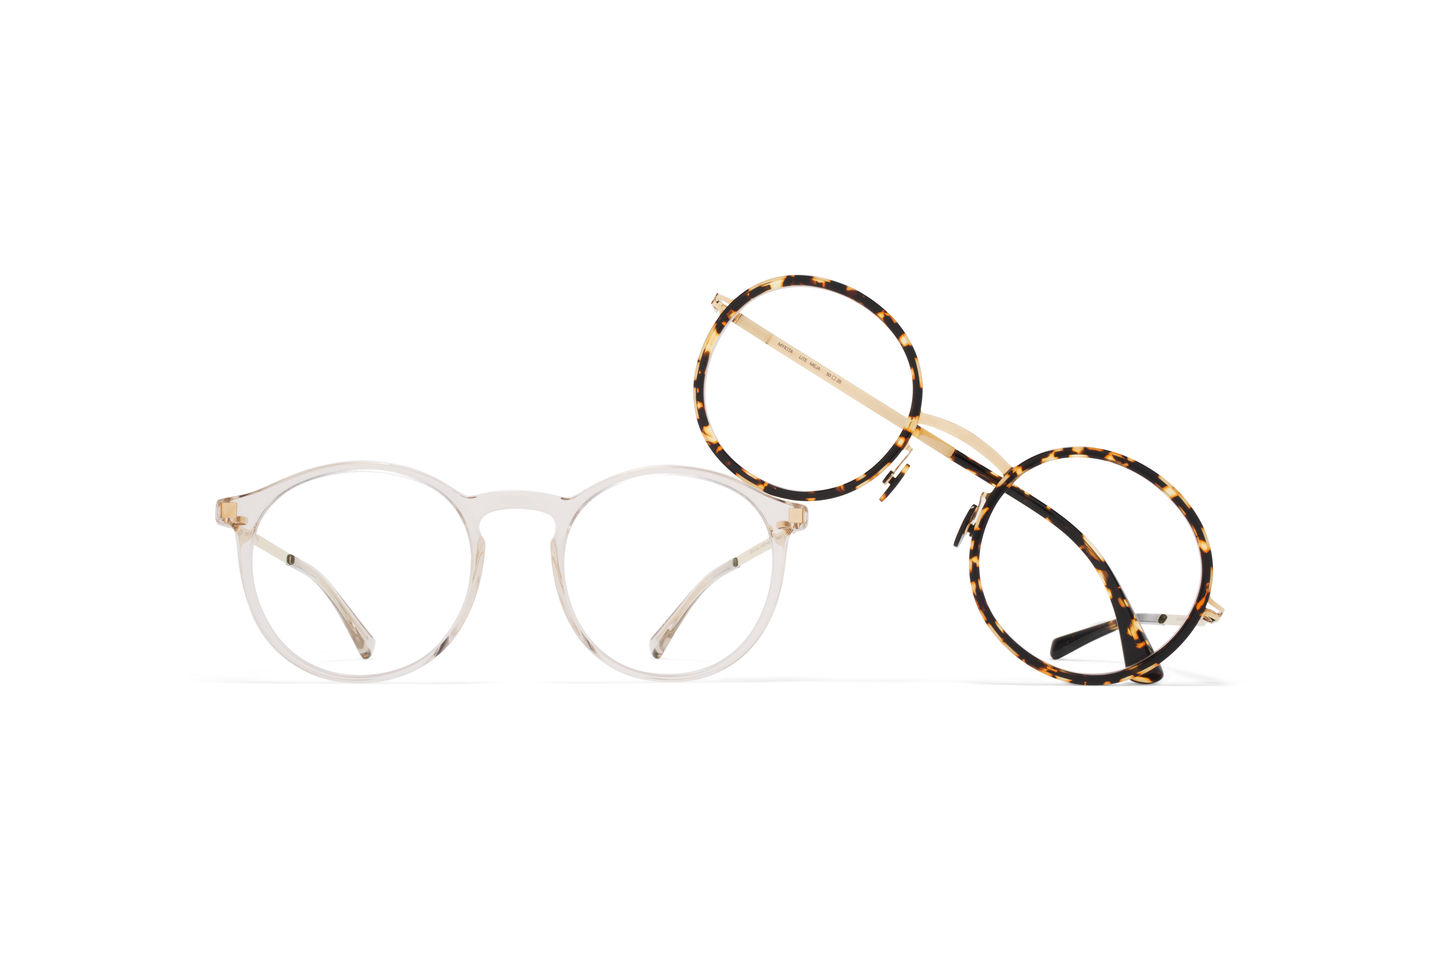 mykita-lite-acetate-rx-meja-a20-glossy-gold-trinidad-clear-1507833_oki-c1-champagne-glossy-gold-clear-2503077-ch-a-300.jpg